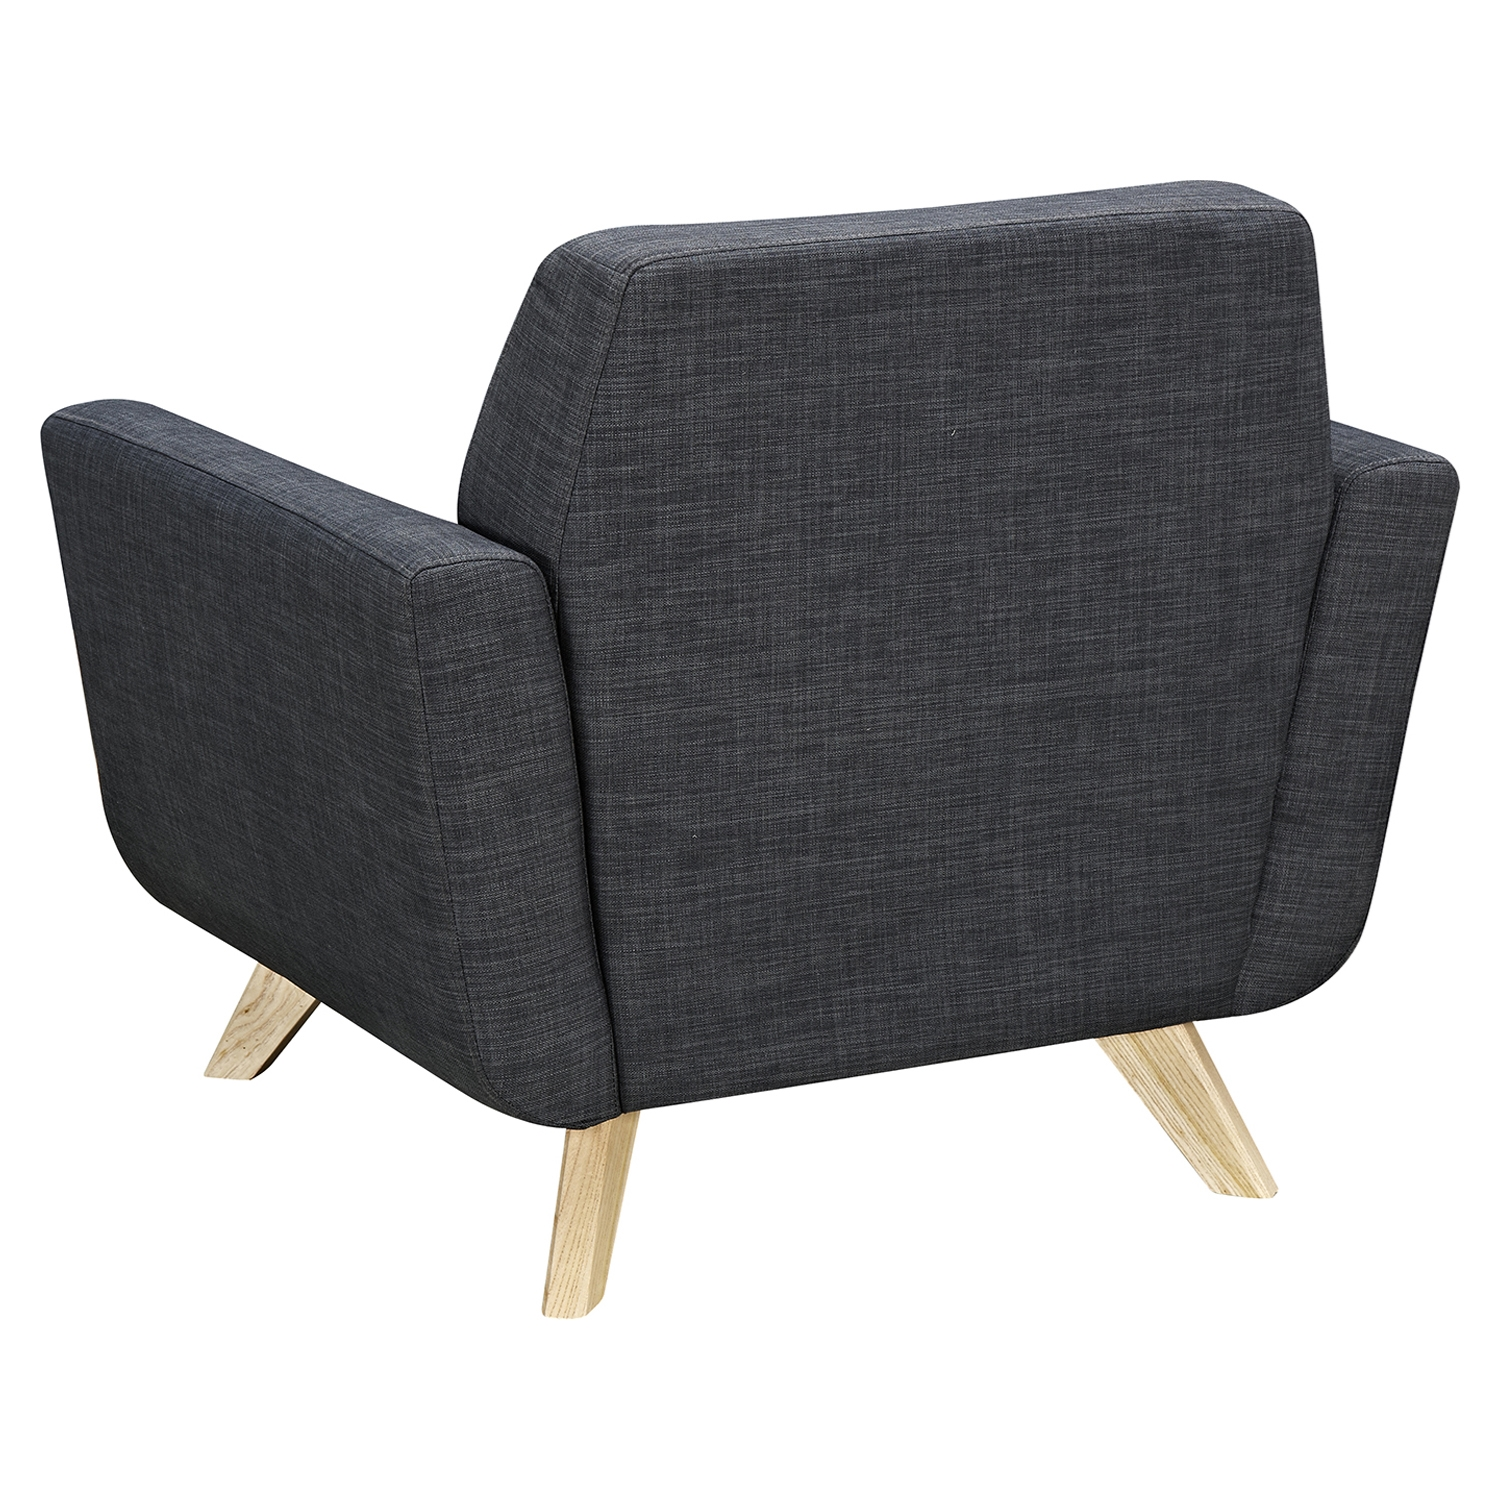 Dania Tufted Upholstery Armchair Charcoal Gray Dcg Stores